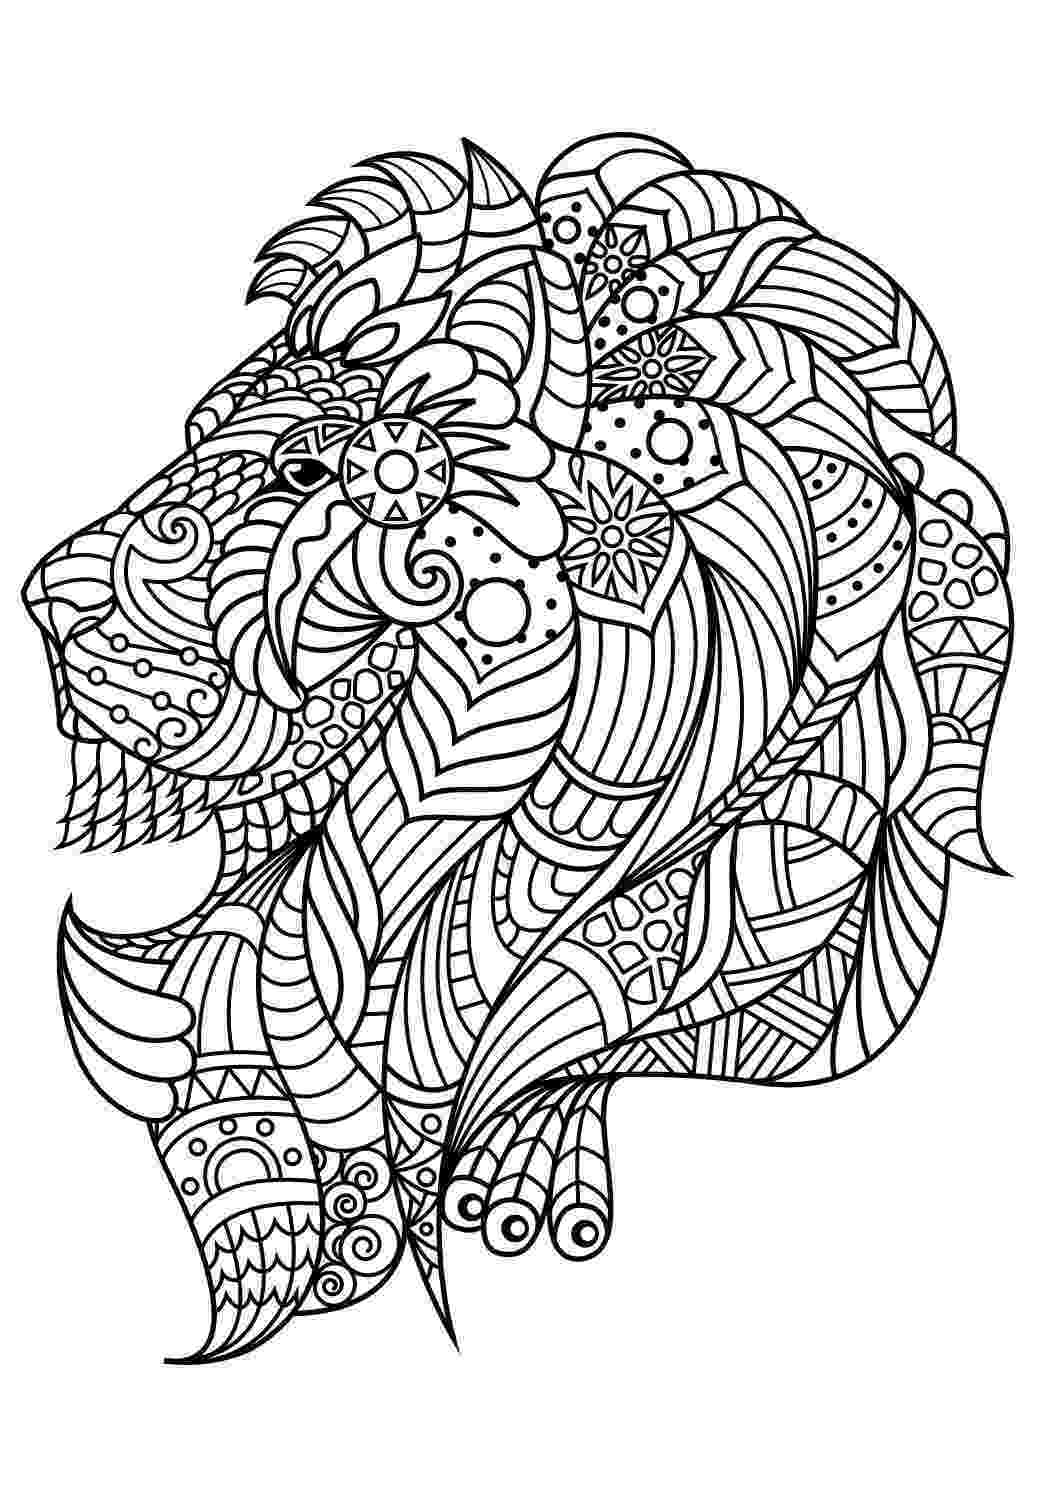 colouring pages for adults animals adult coloring pagebook a pigzen style art illustration pages for colouring animals adults